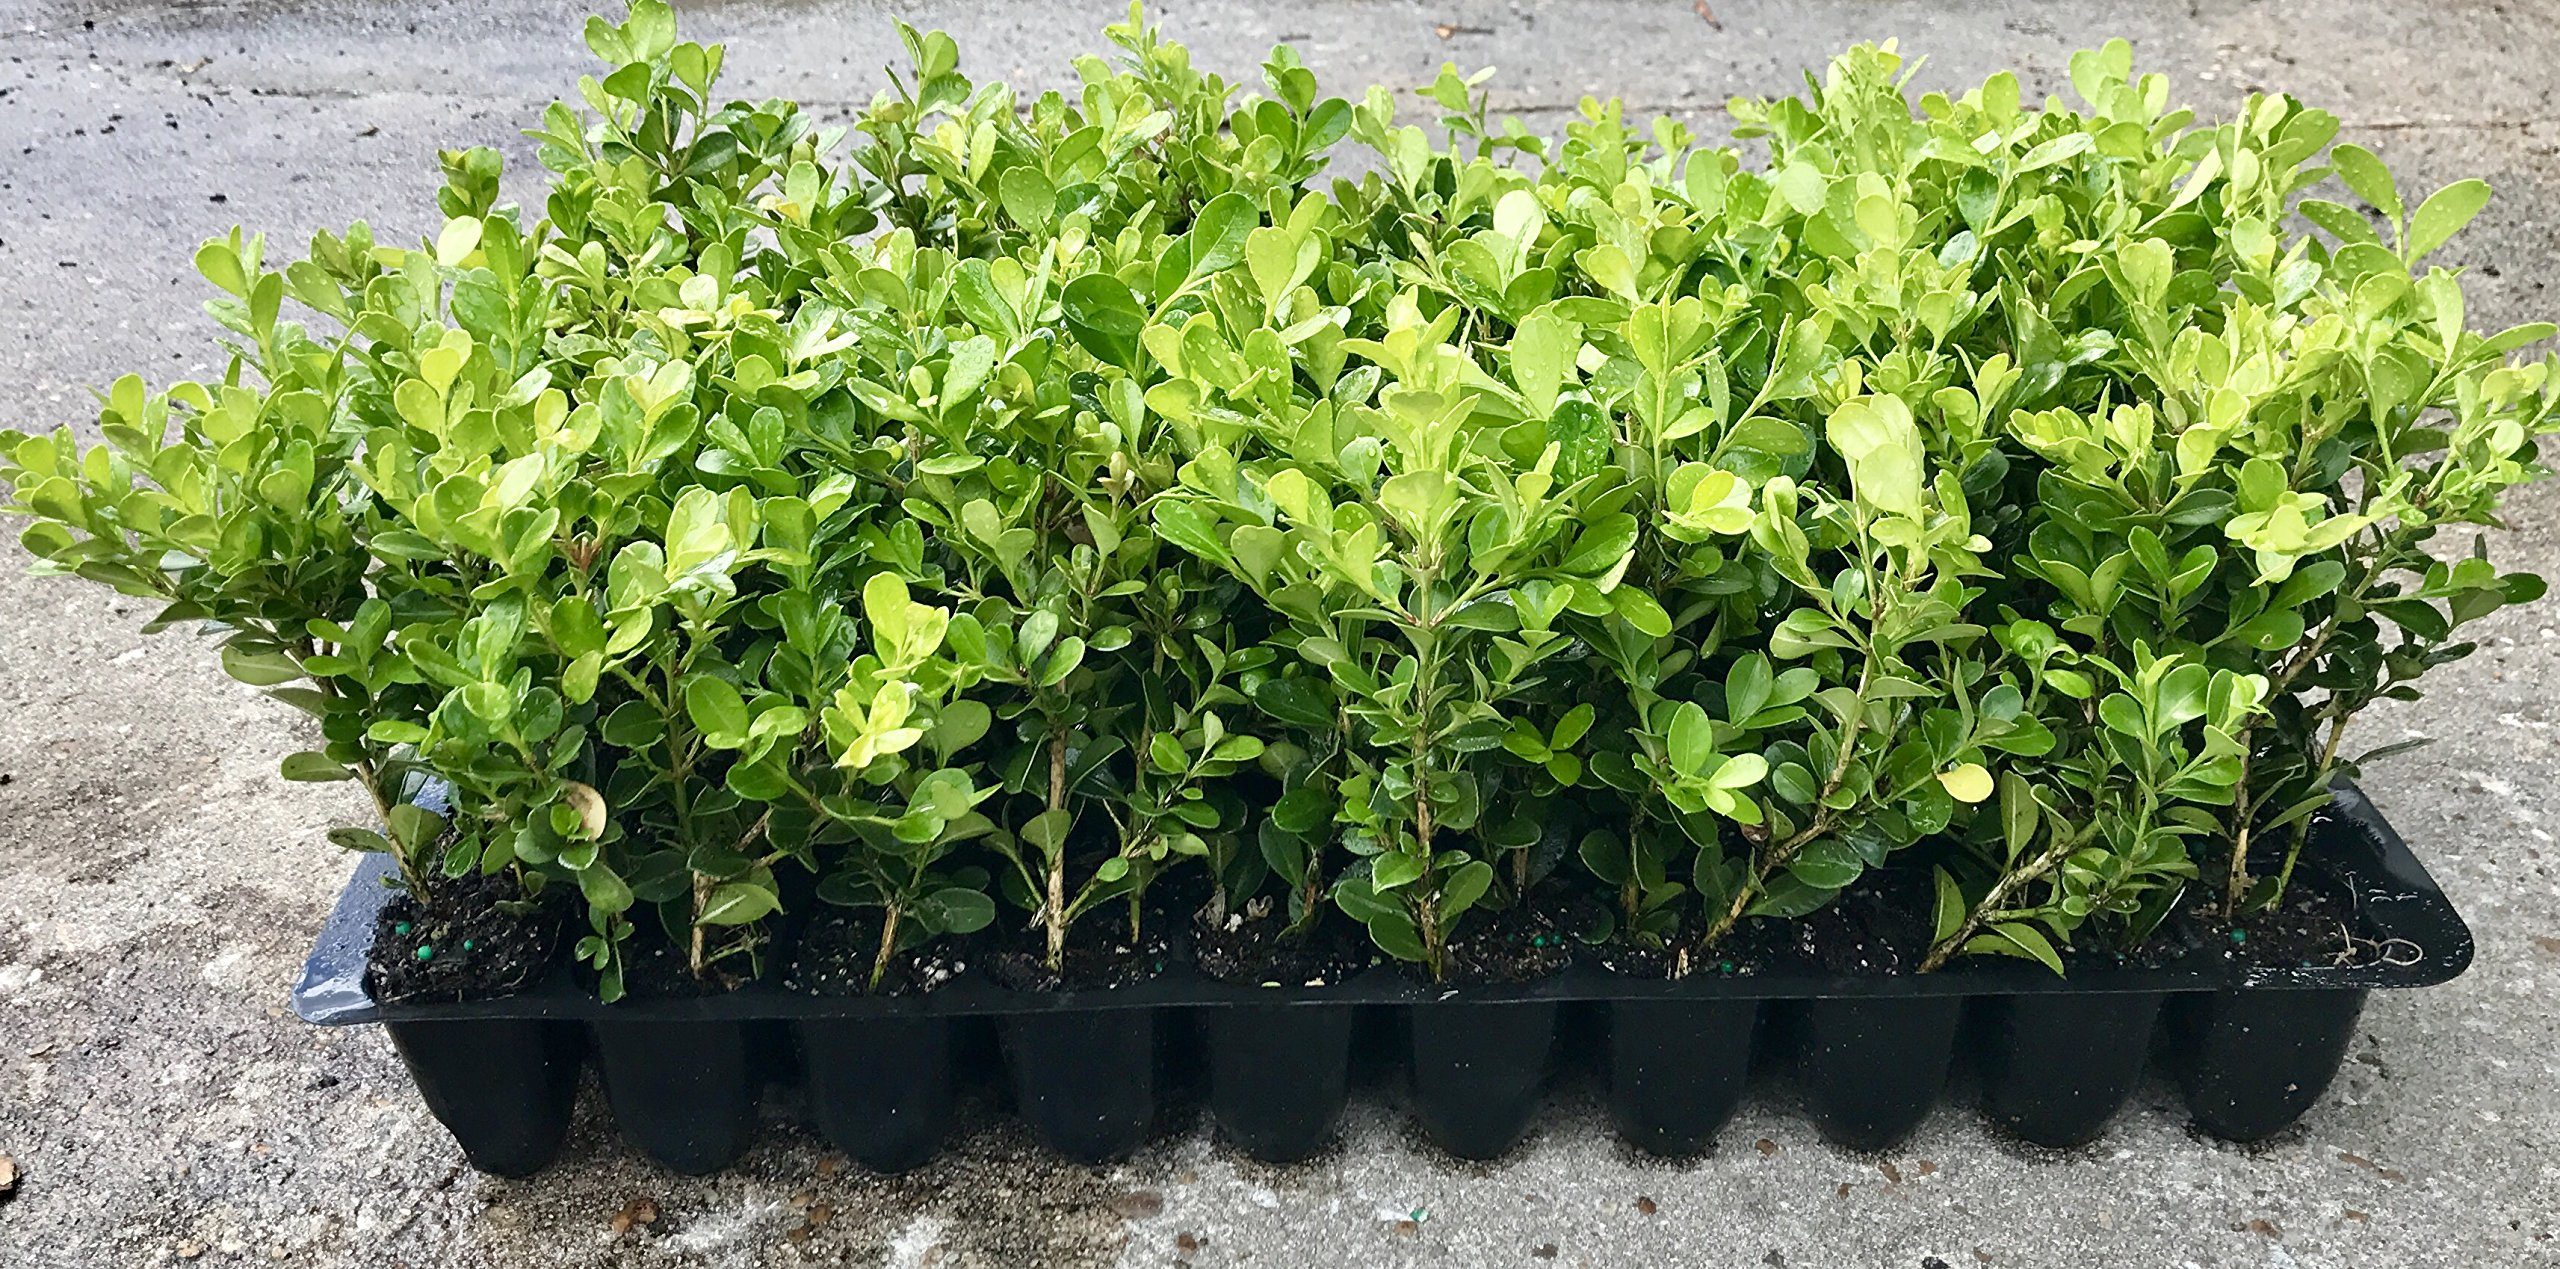 Japanese Boxwood Qty 60 Live Plants Buxus Fast Growing Cold Hardy Evergreen by Japanese Boxwood